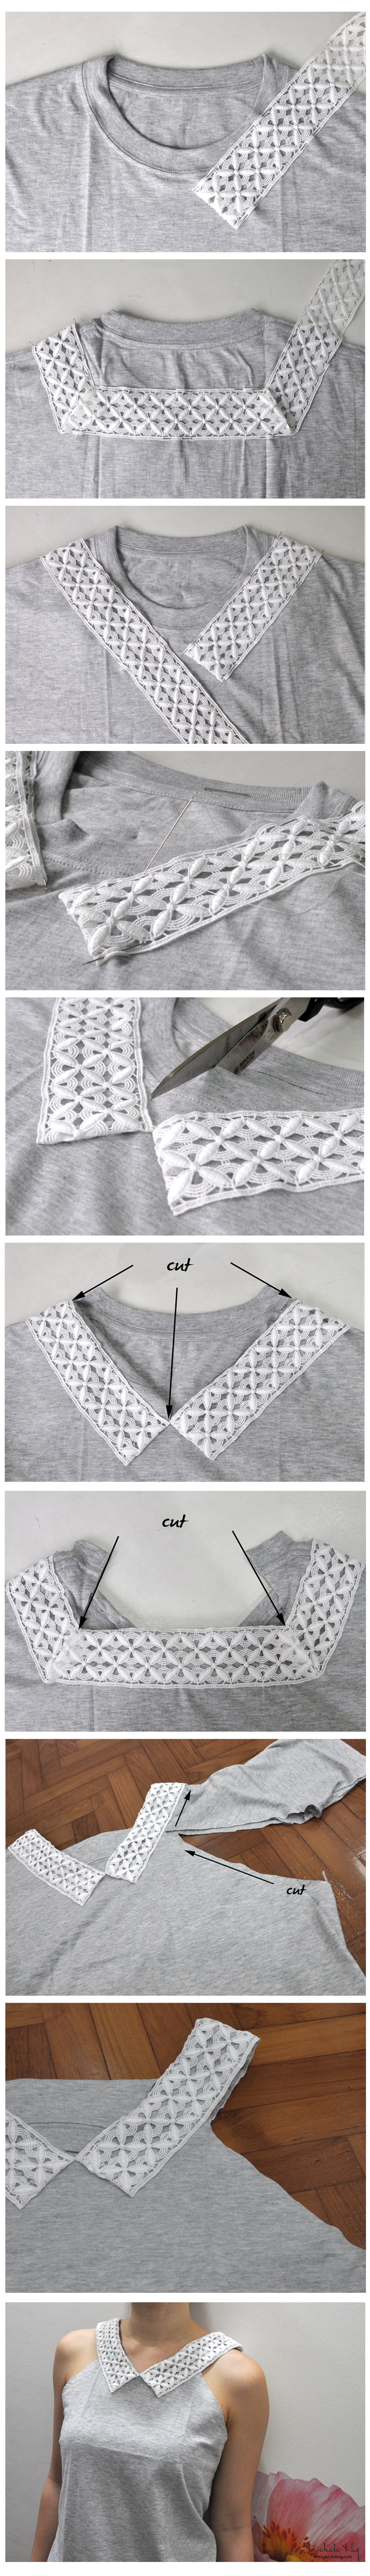 how to upcycle a plain old tee shirt tutorial